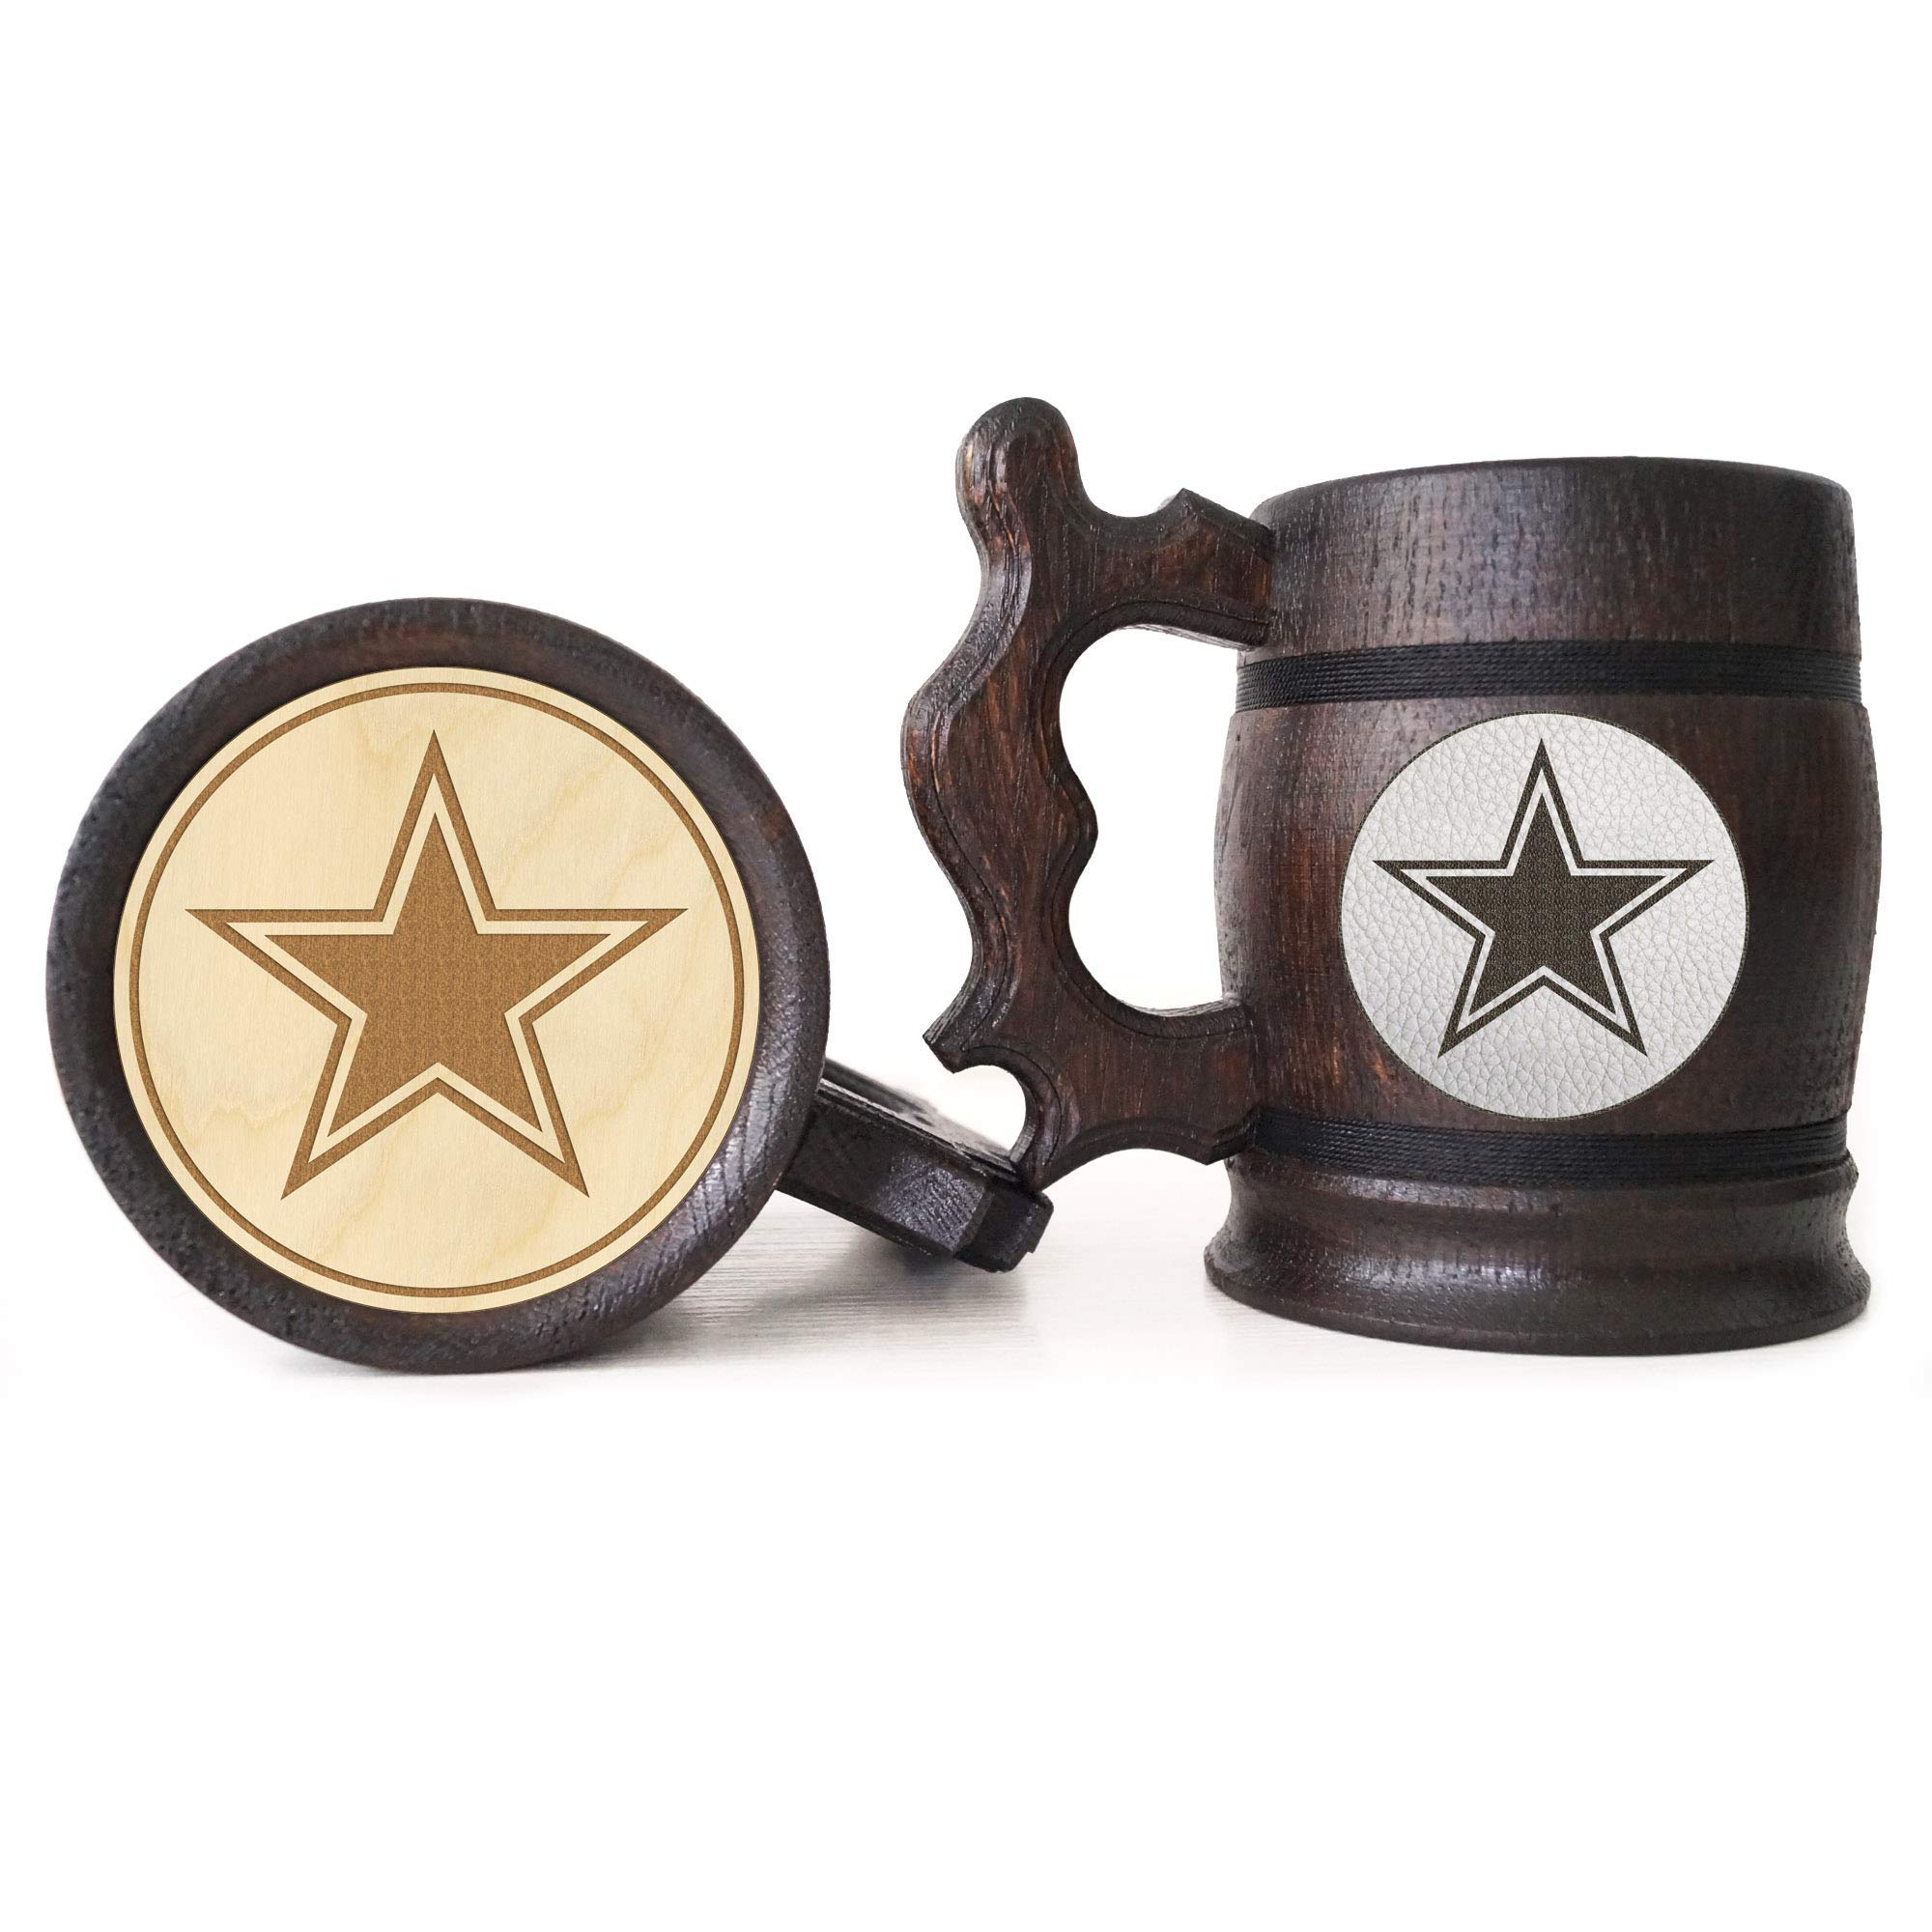 Dallas Cowboys Beer Mug American Football Wooden Beer Stein Sport Gift Personalized Beer Stein Dallas Cowboys ...  sc 1 st  Amzn.promo : dallas cowboys personalized gifts - princetonregatta.org